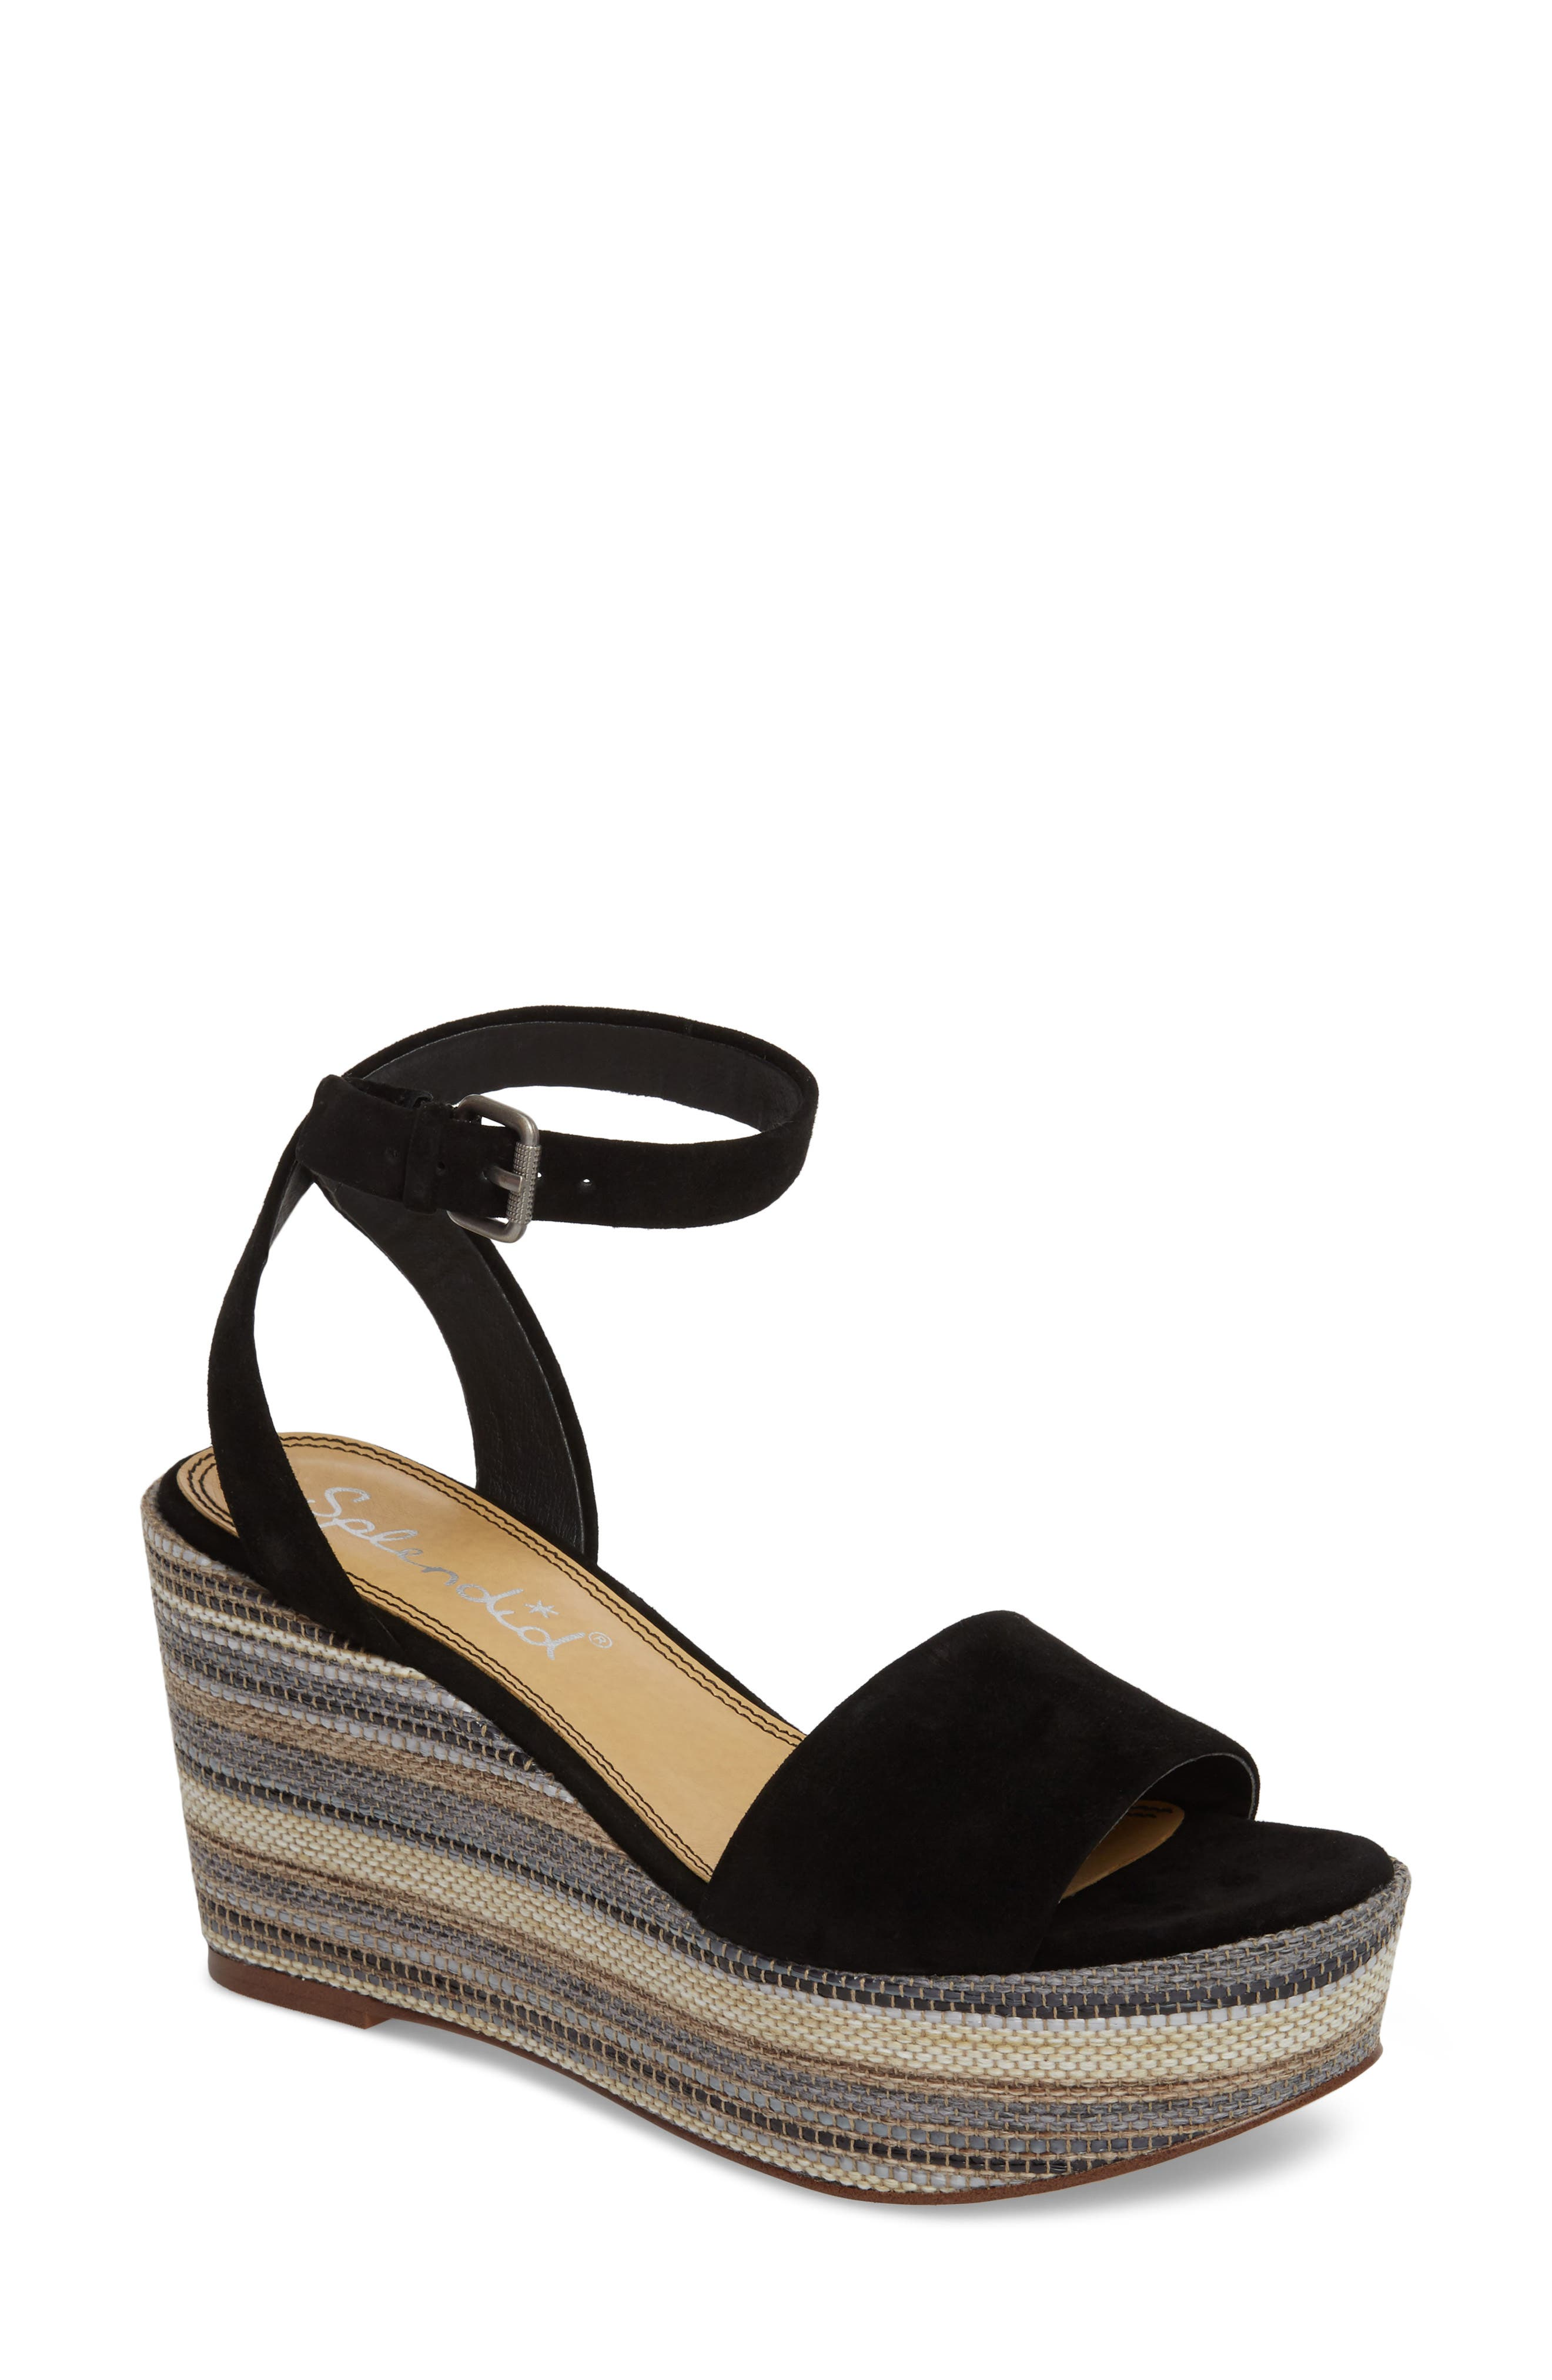 Felix Platform Wedge Sandal,                         Main,                         color, BLACK MULTI SUEDE